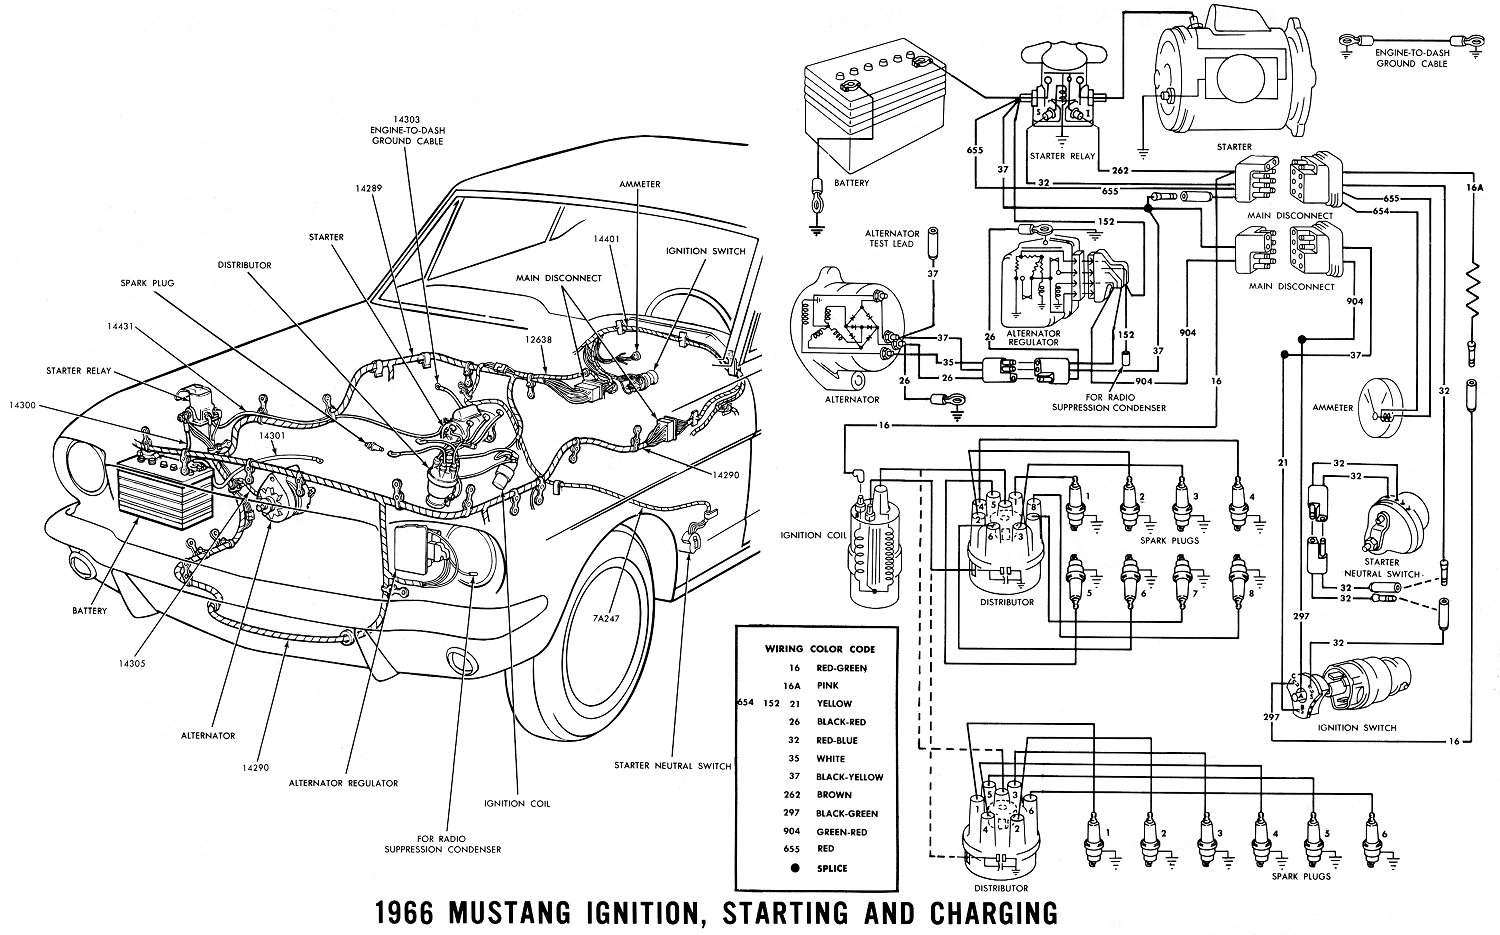 windstar radio wiring diagram with 1966 Mustang Wiring Diagrams on 93 Ford F700 Wiring Diagram besides Schematics h likewise 07paz Need Fuse Diagram 1996 Ford E250 in addition T2215465 Need fuse box diagram 1992 ford ranger also FORD Car Radio Wiring Connector.